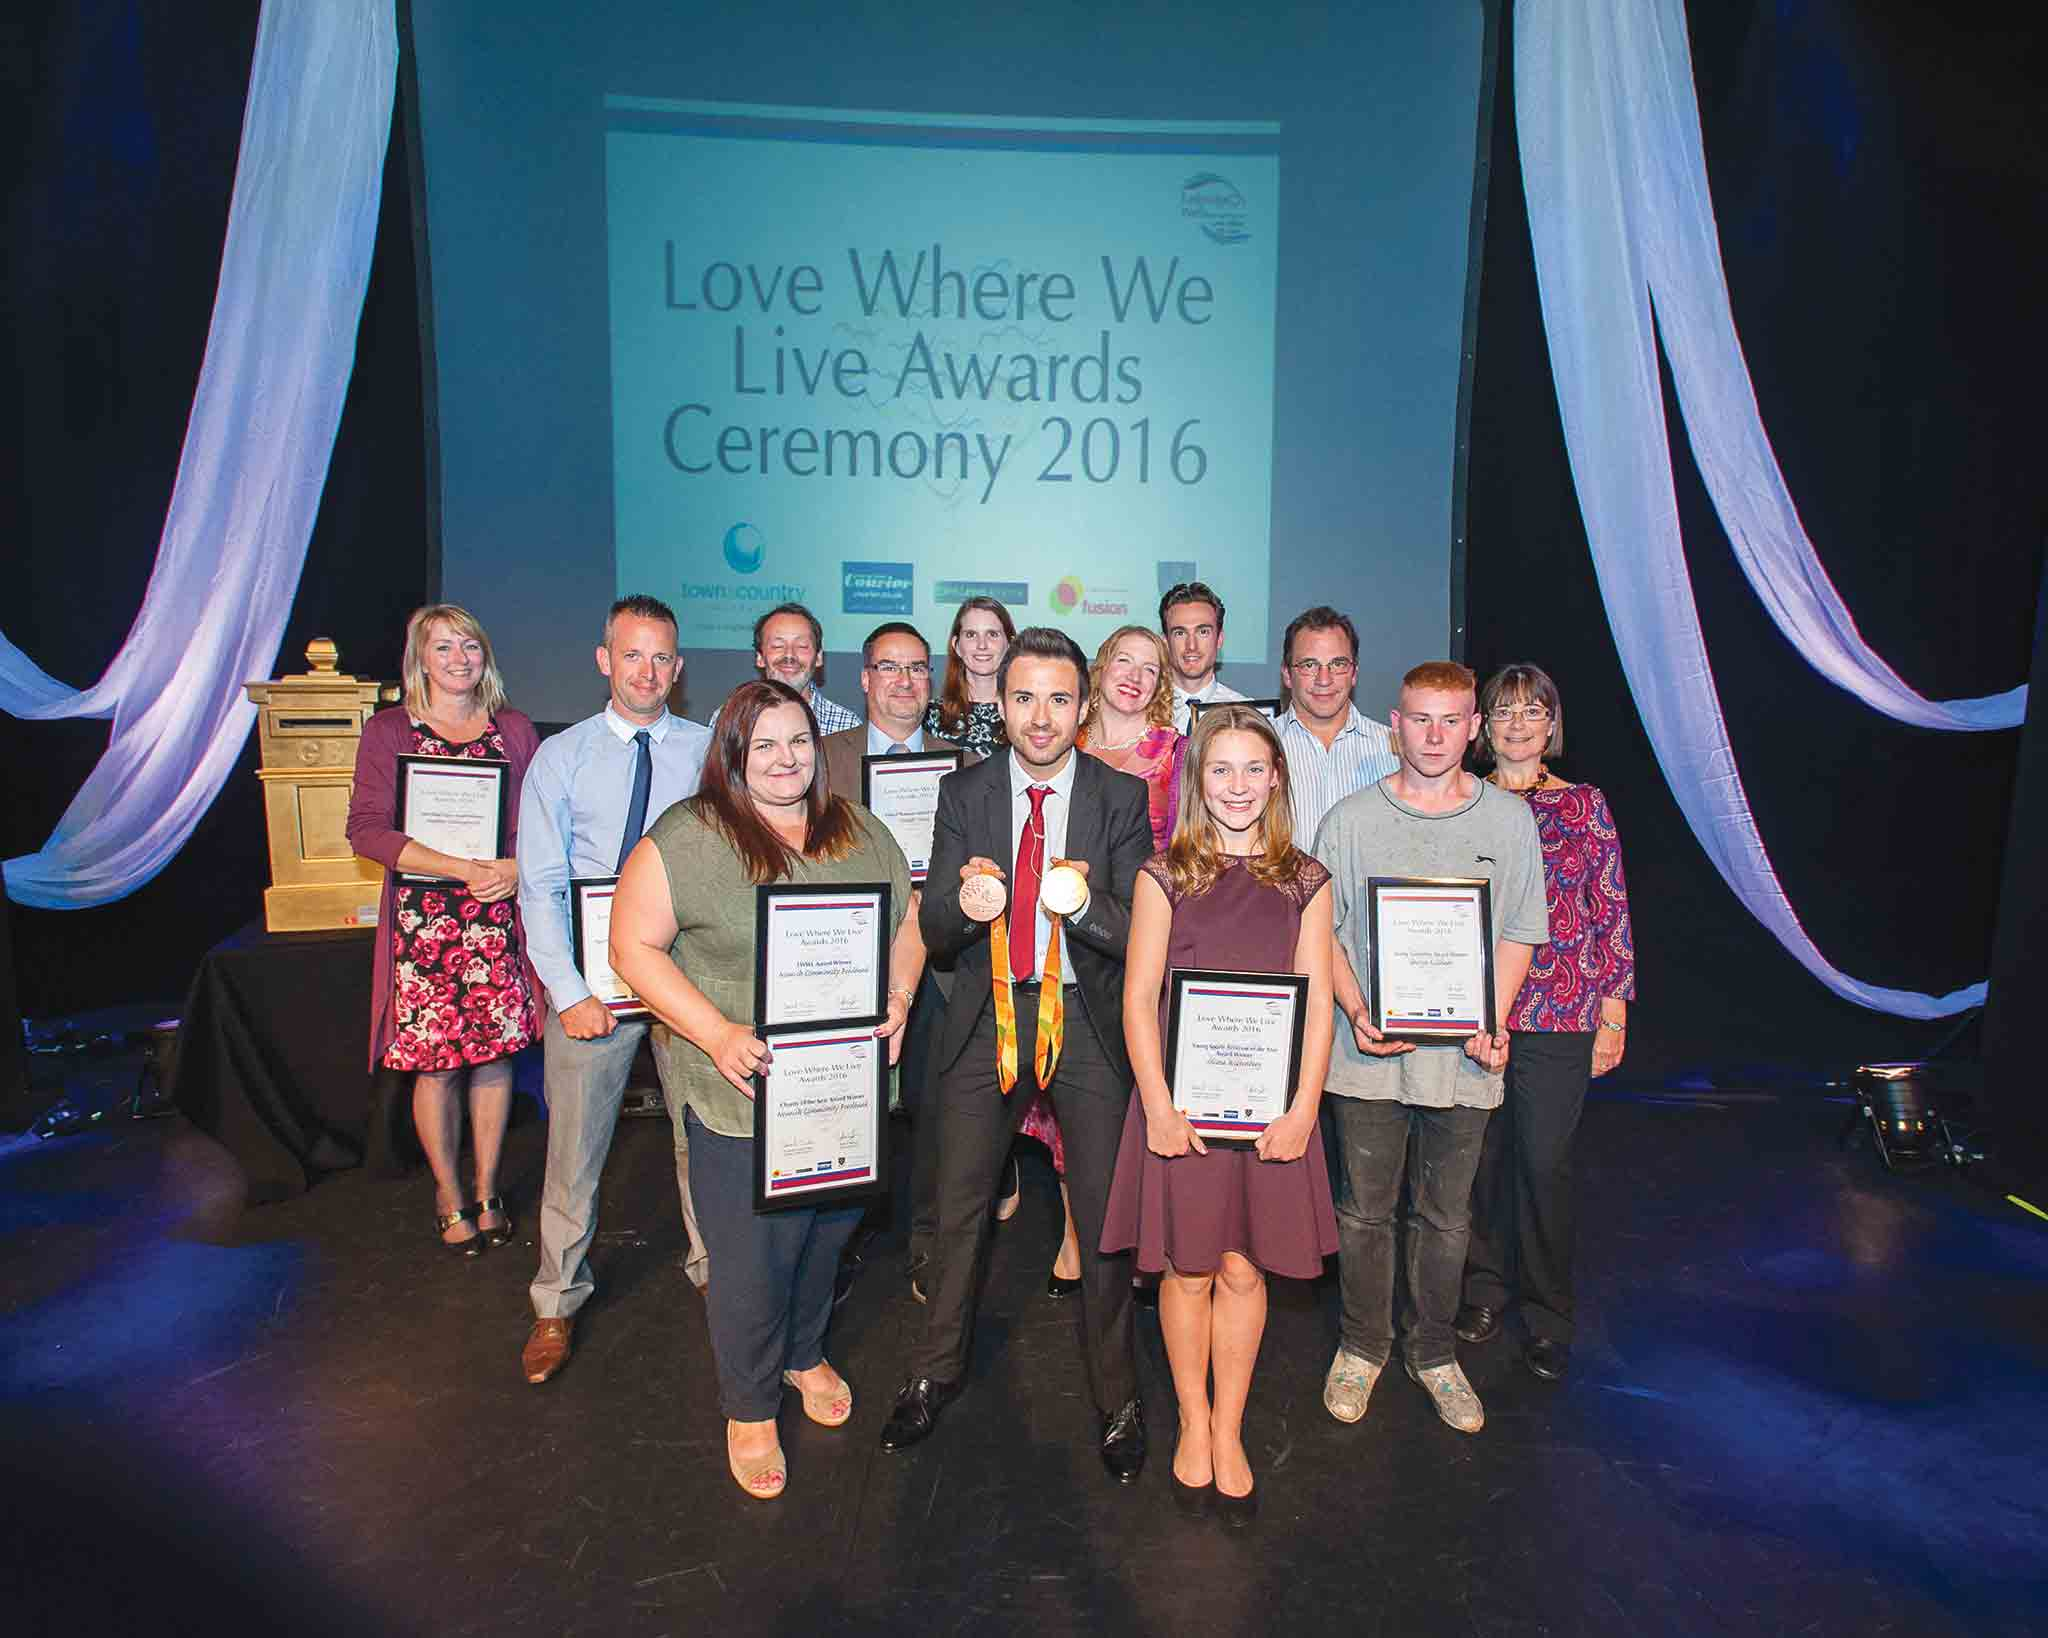 Love Where We Live awards 2016